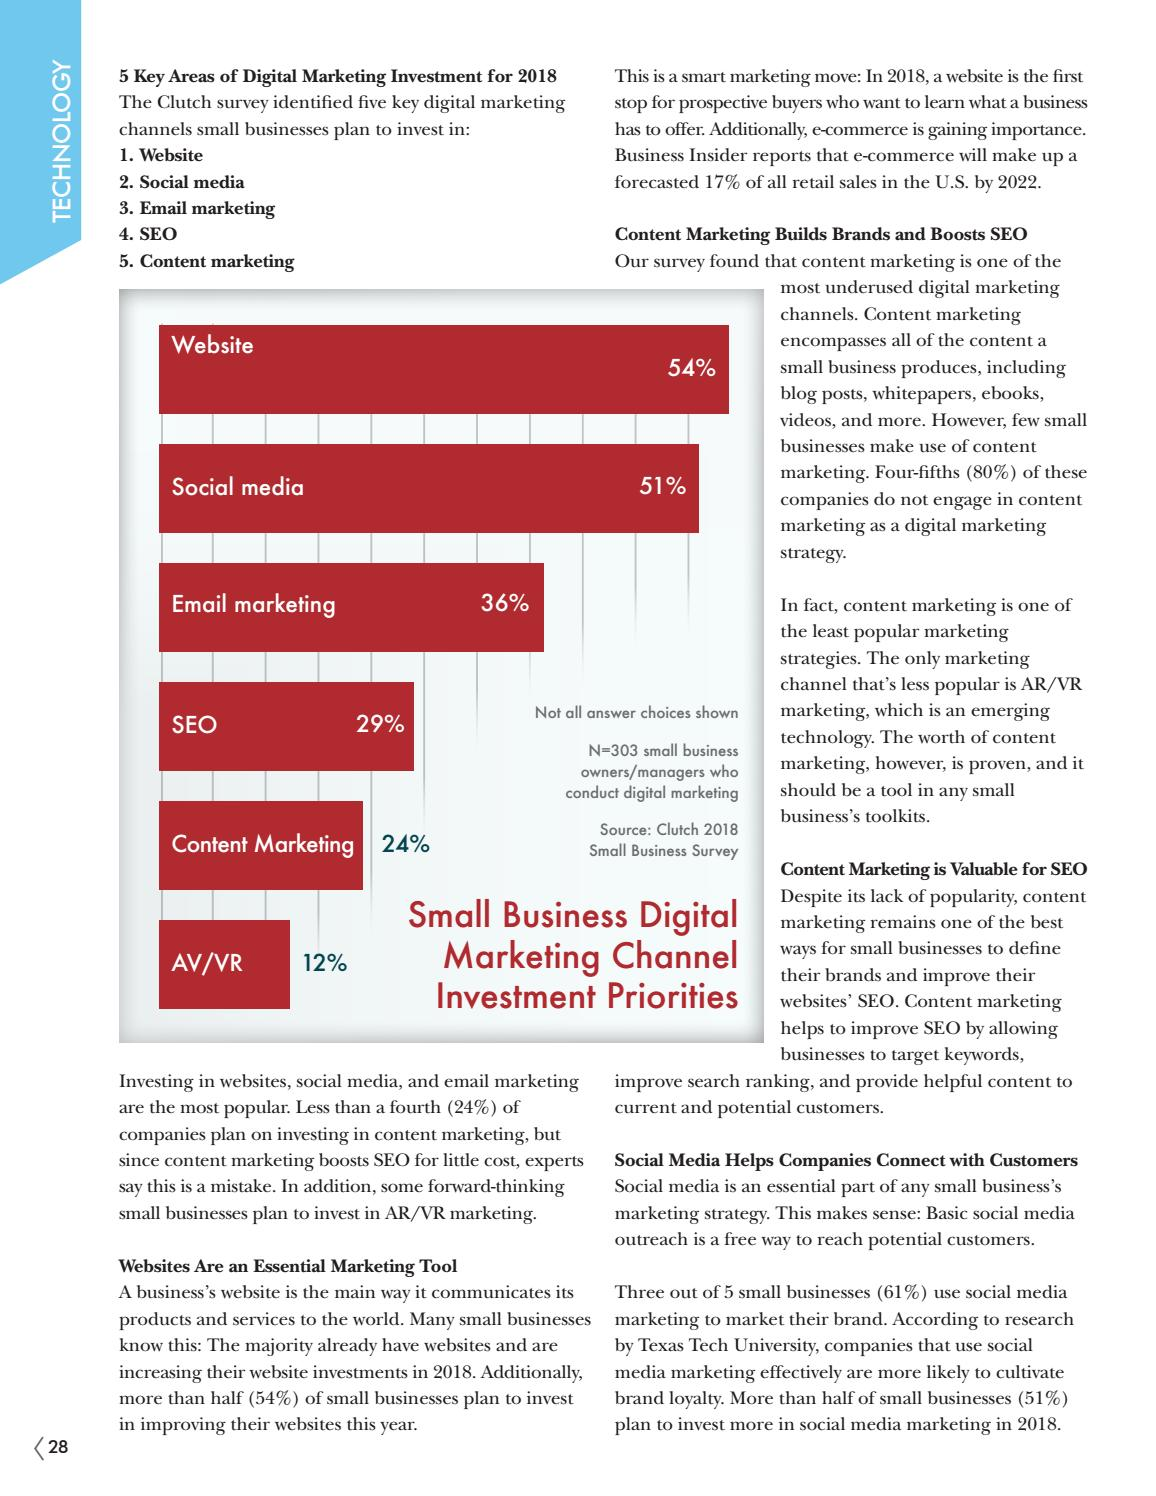 small businesses need digital marketing learn the details of small business marketing